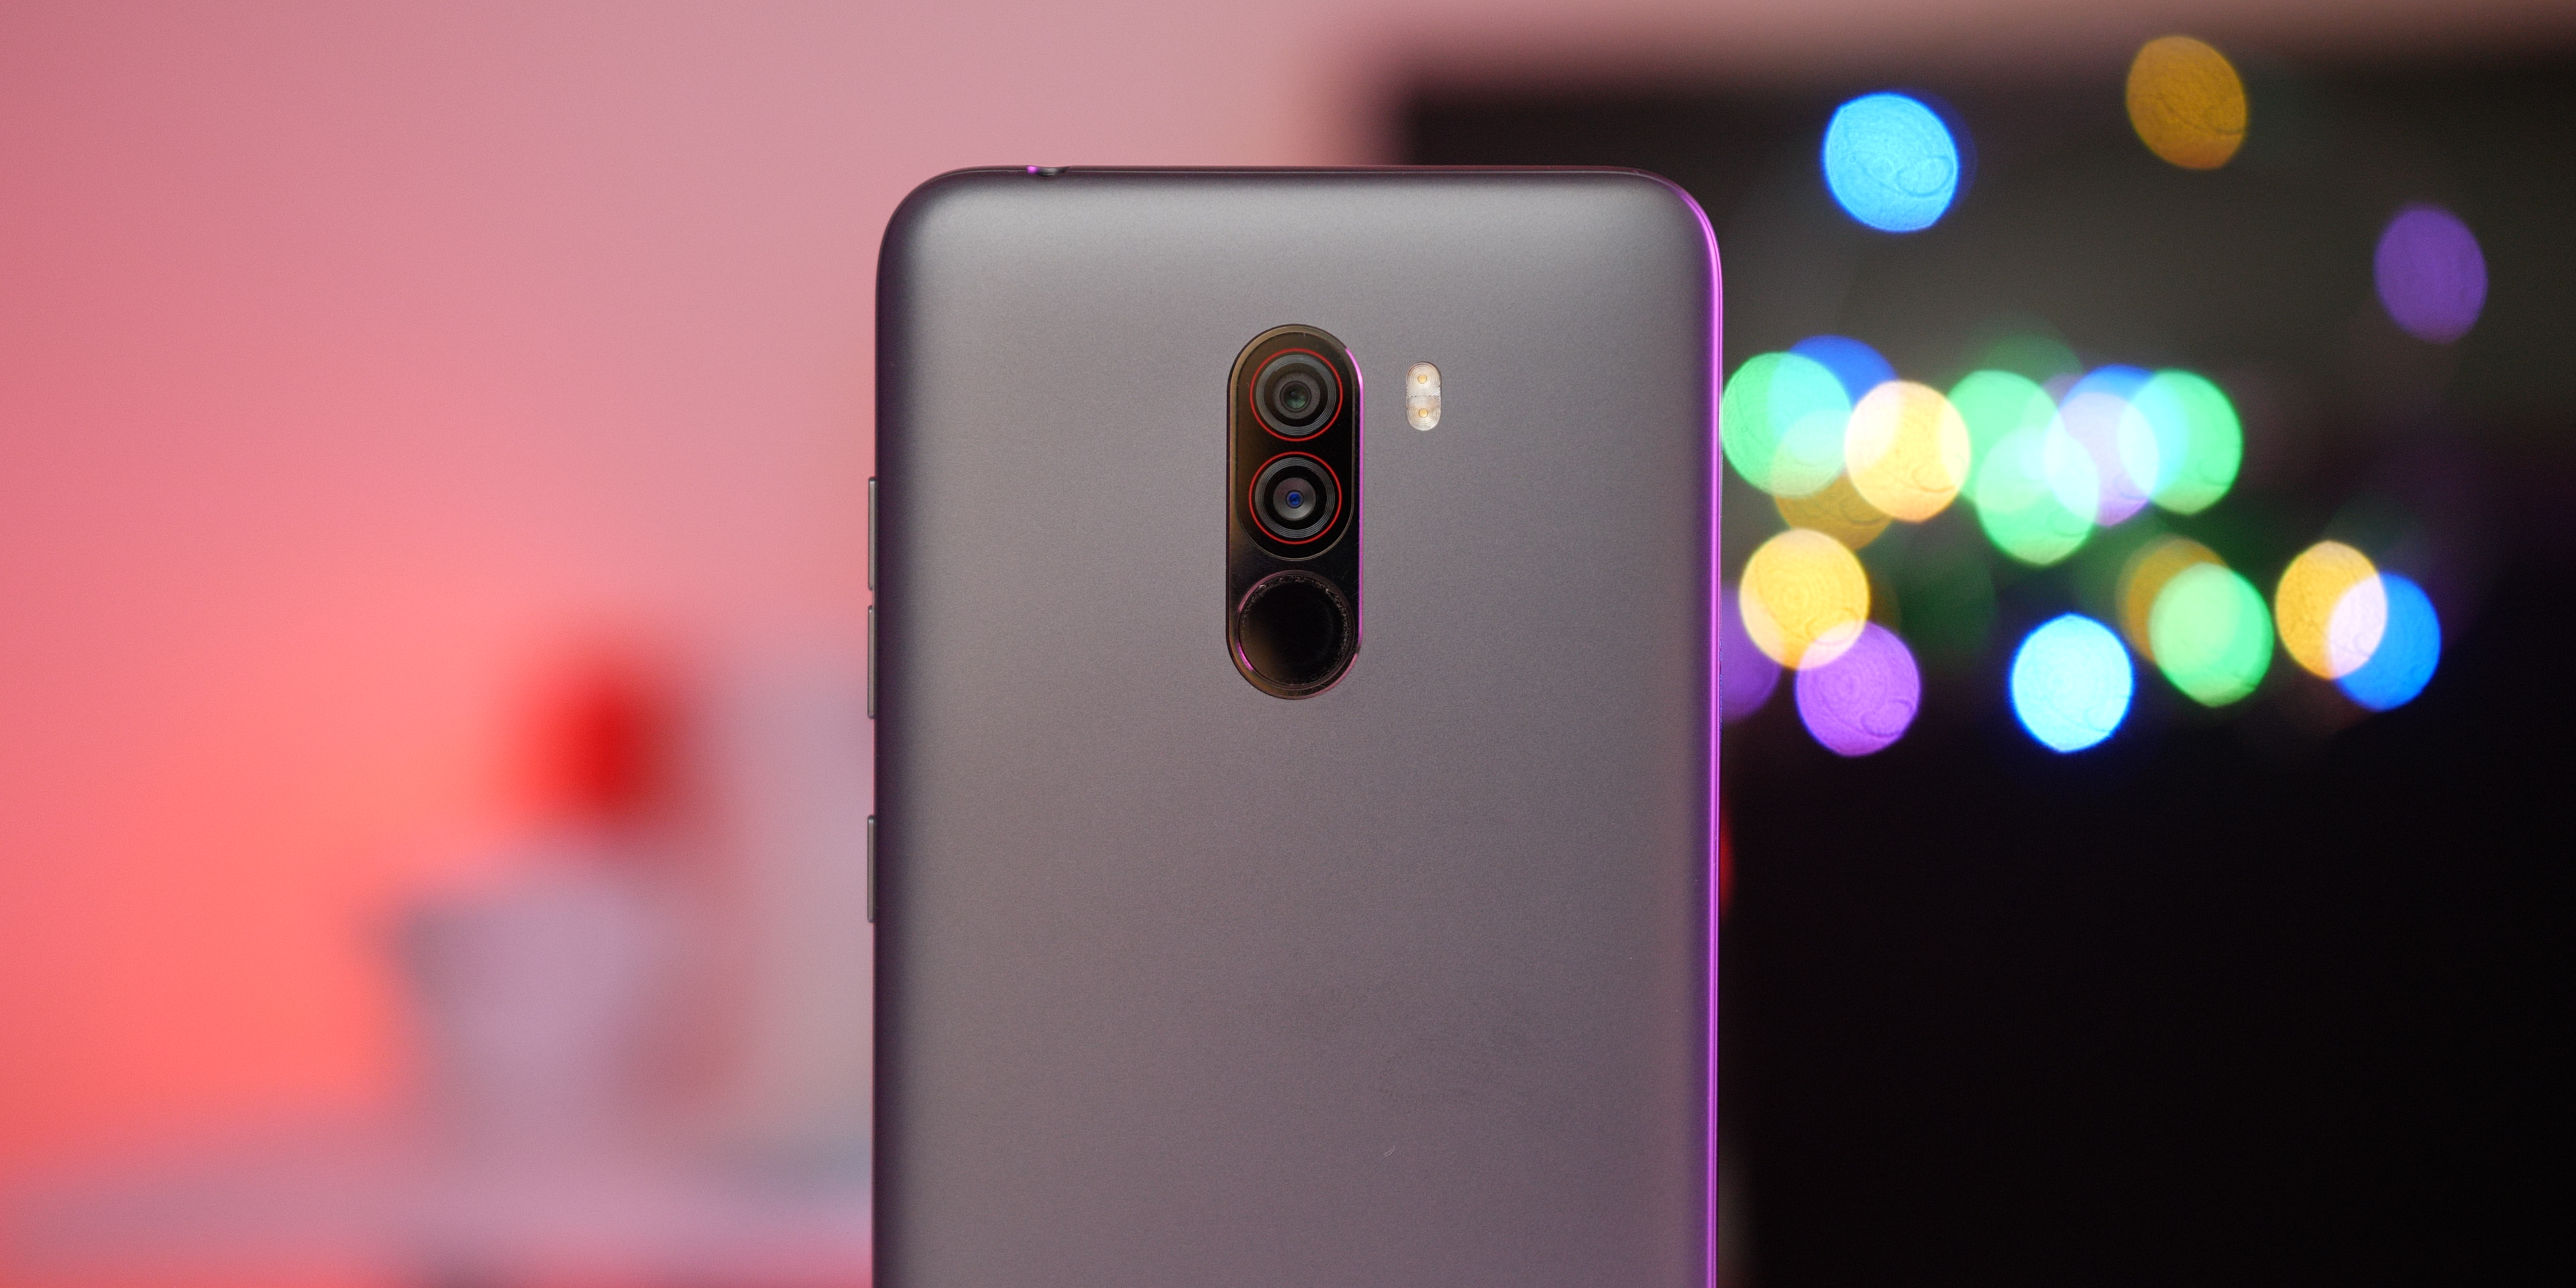 The Xiaomi Pocophone F1 is getting 960FPS slo-mo, 4K 60FPS